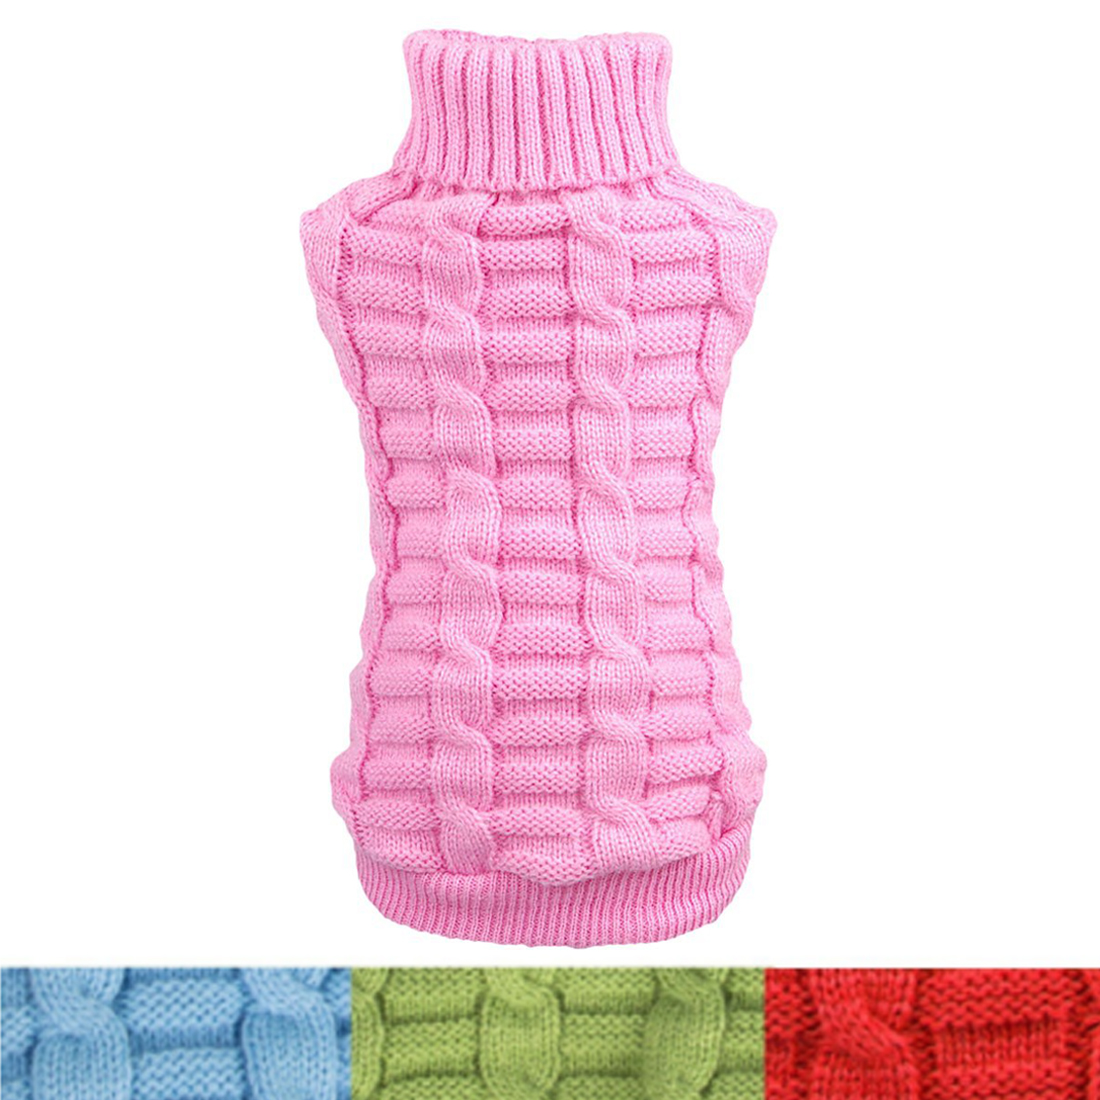 Pet Dog Cat Warm Coat Knit Sweater Winter Clothes Apparel for Small Puppy